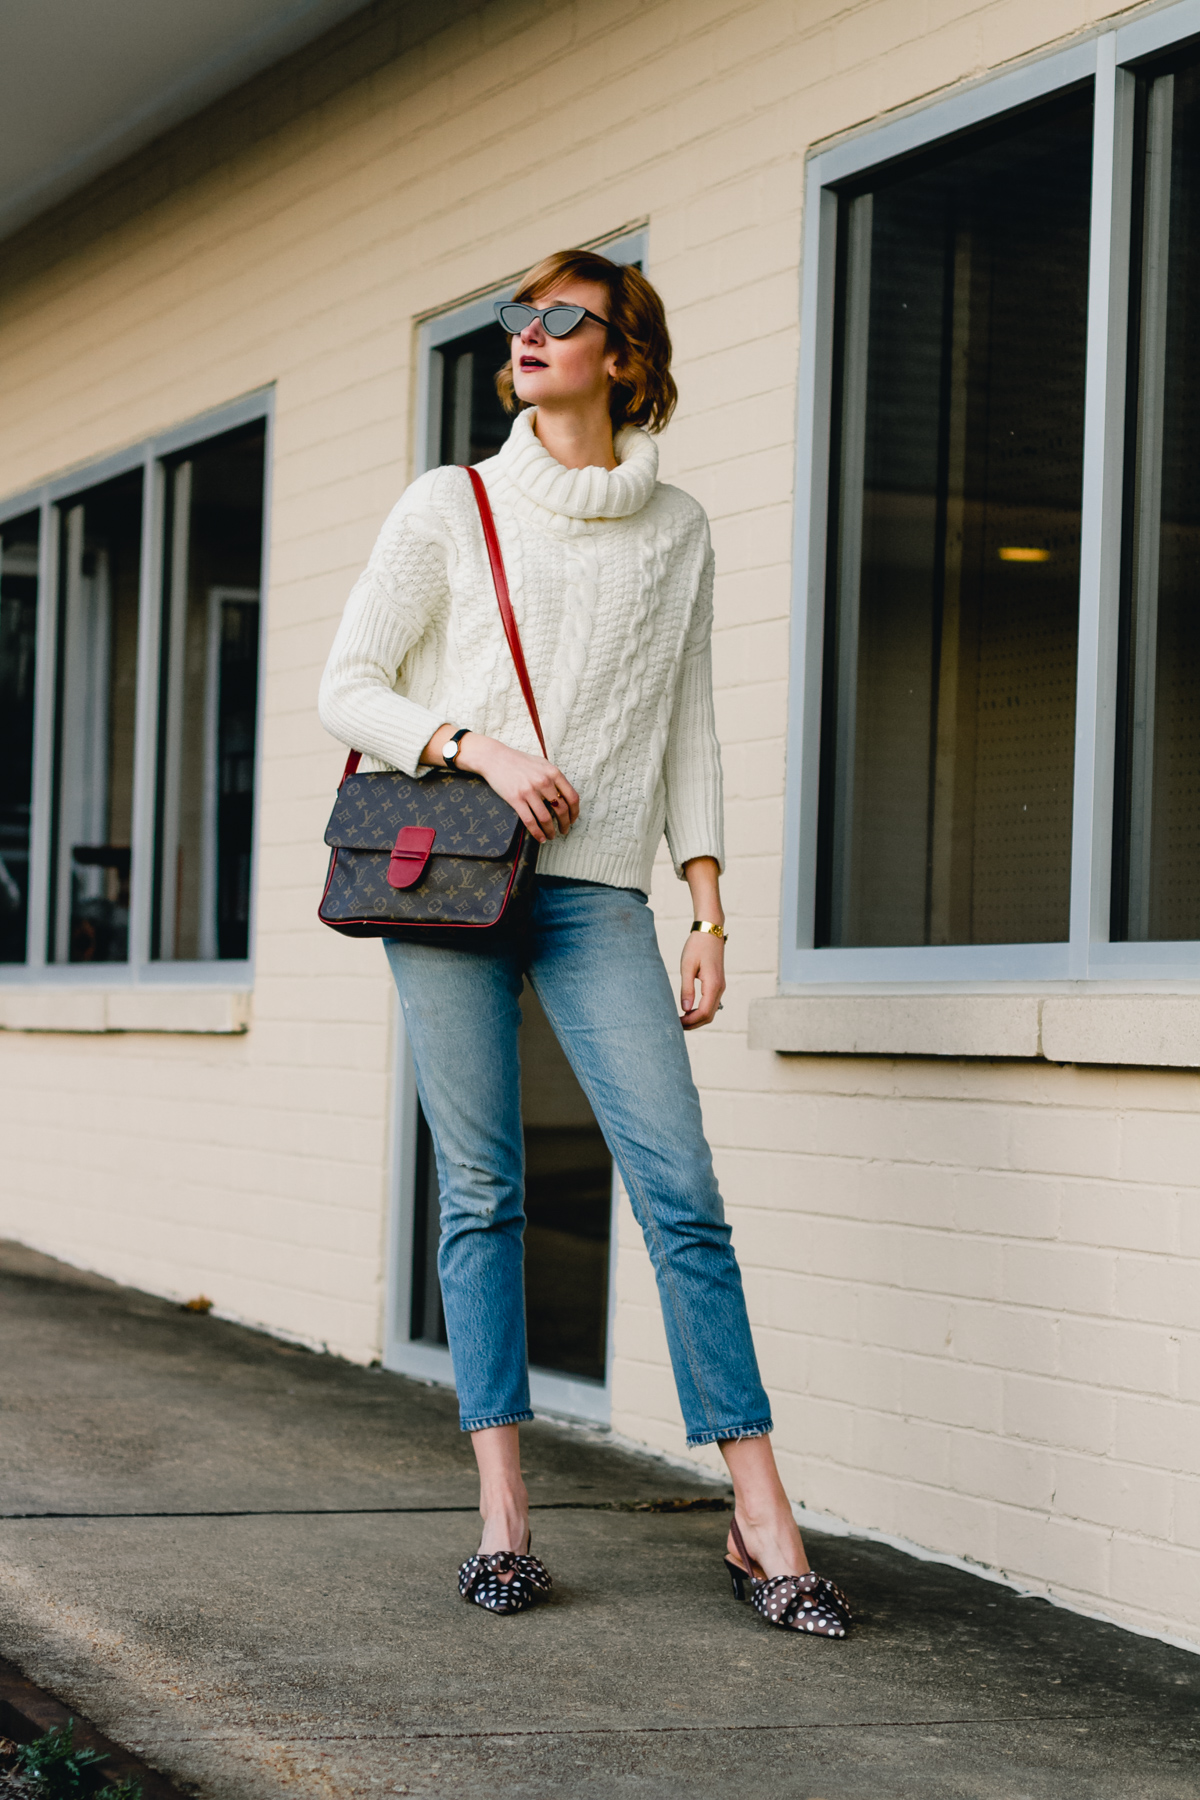 cableknit, RE/DONE jeans, and LV bag